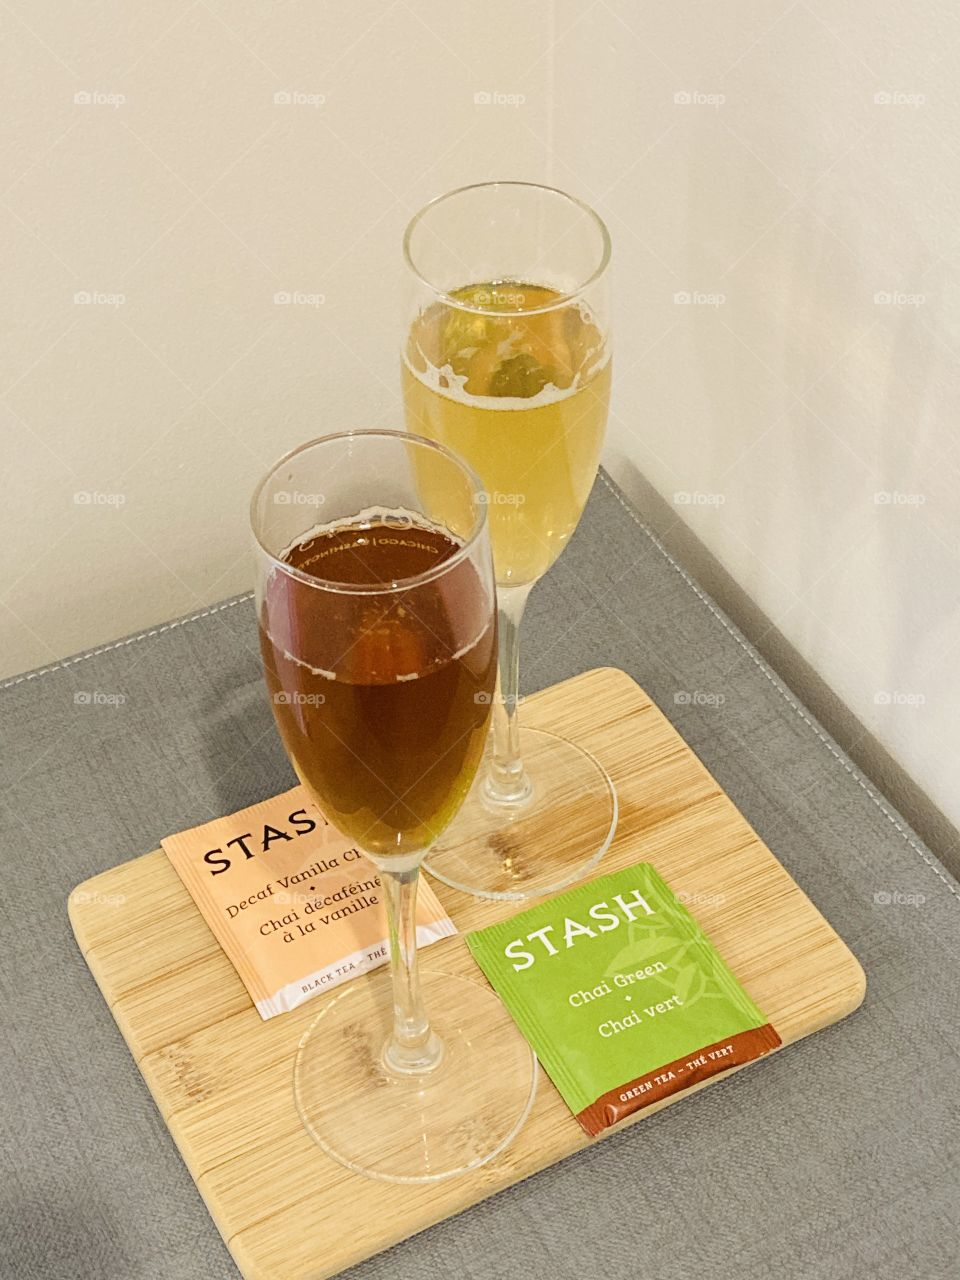 Bright pairing of Stash teas in champagne flutes with foil tea bags on a bamboo board